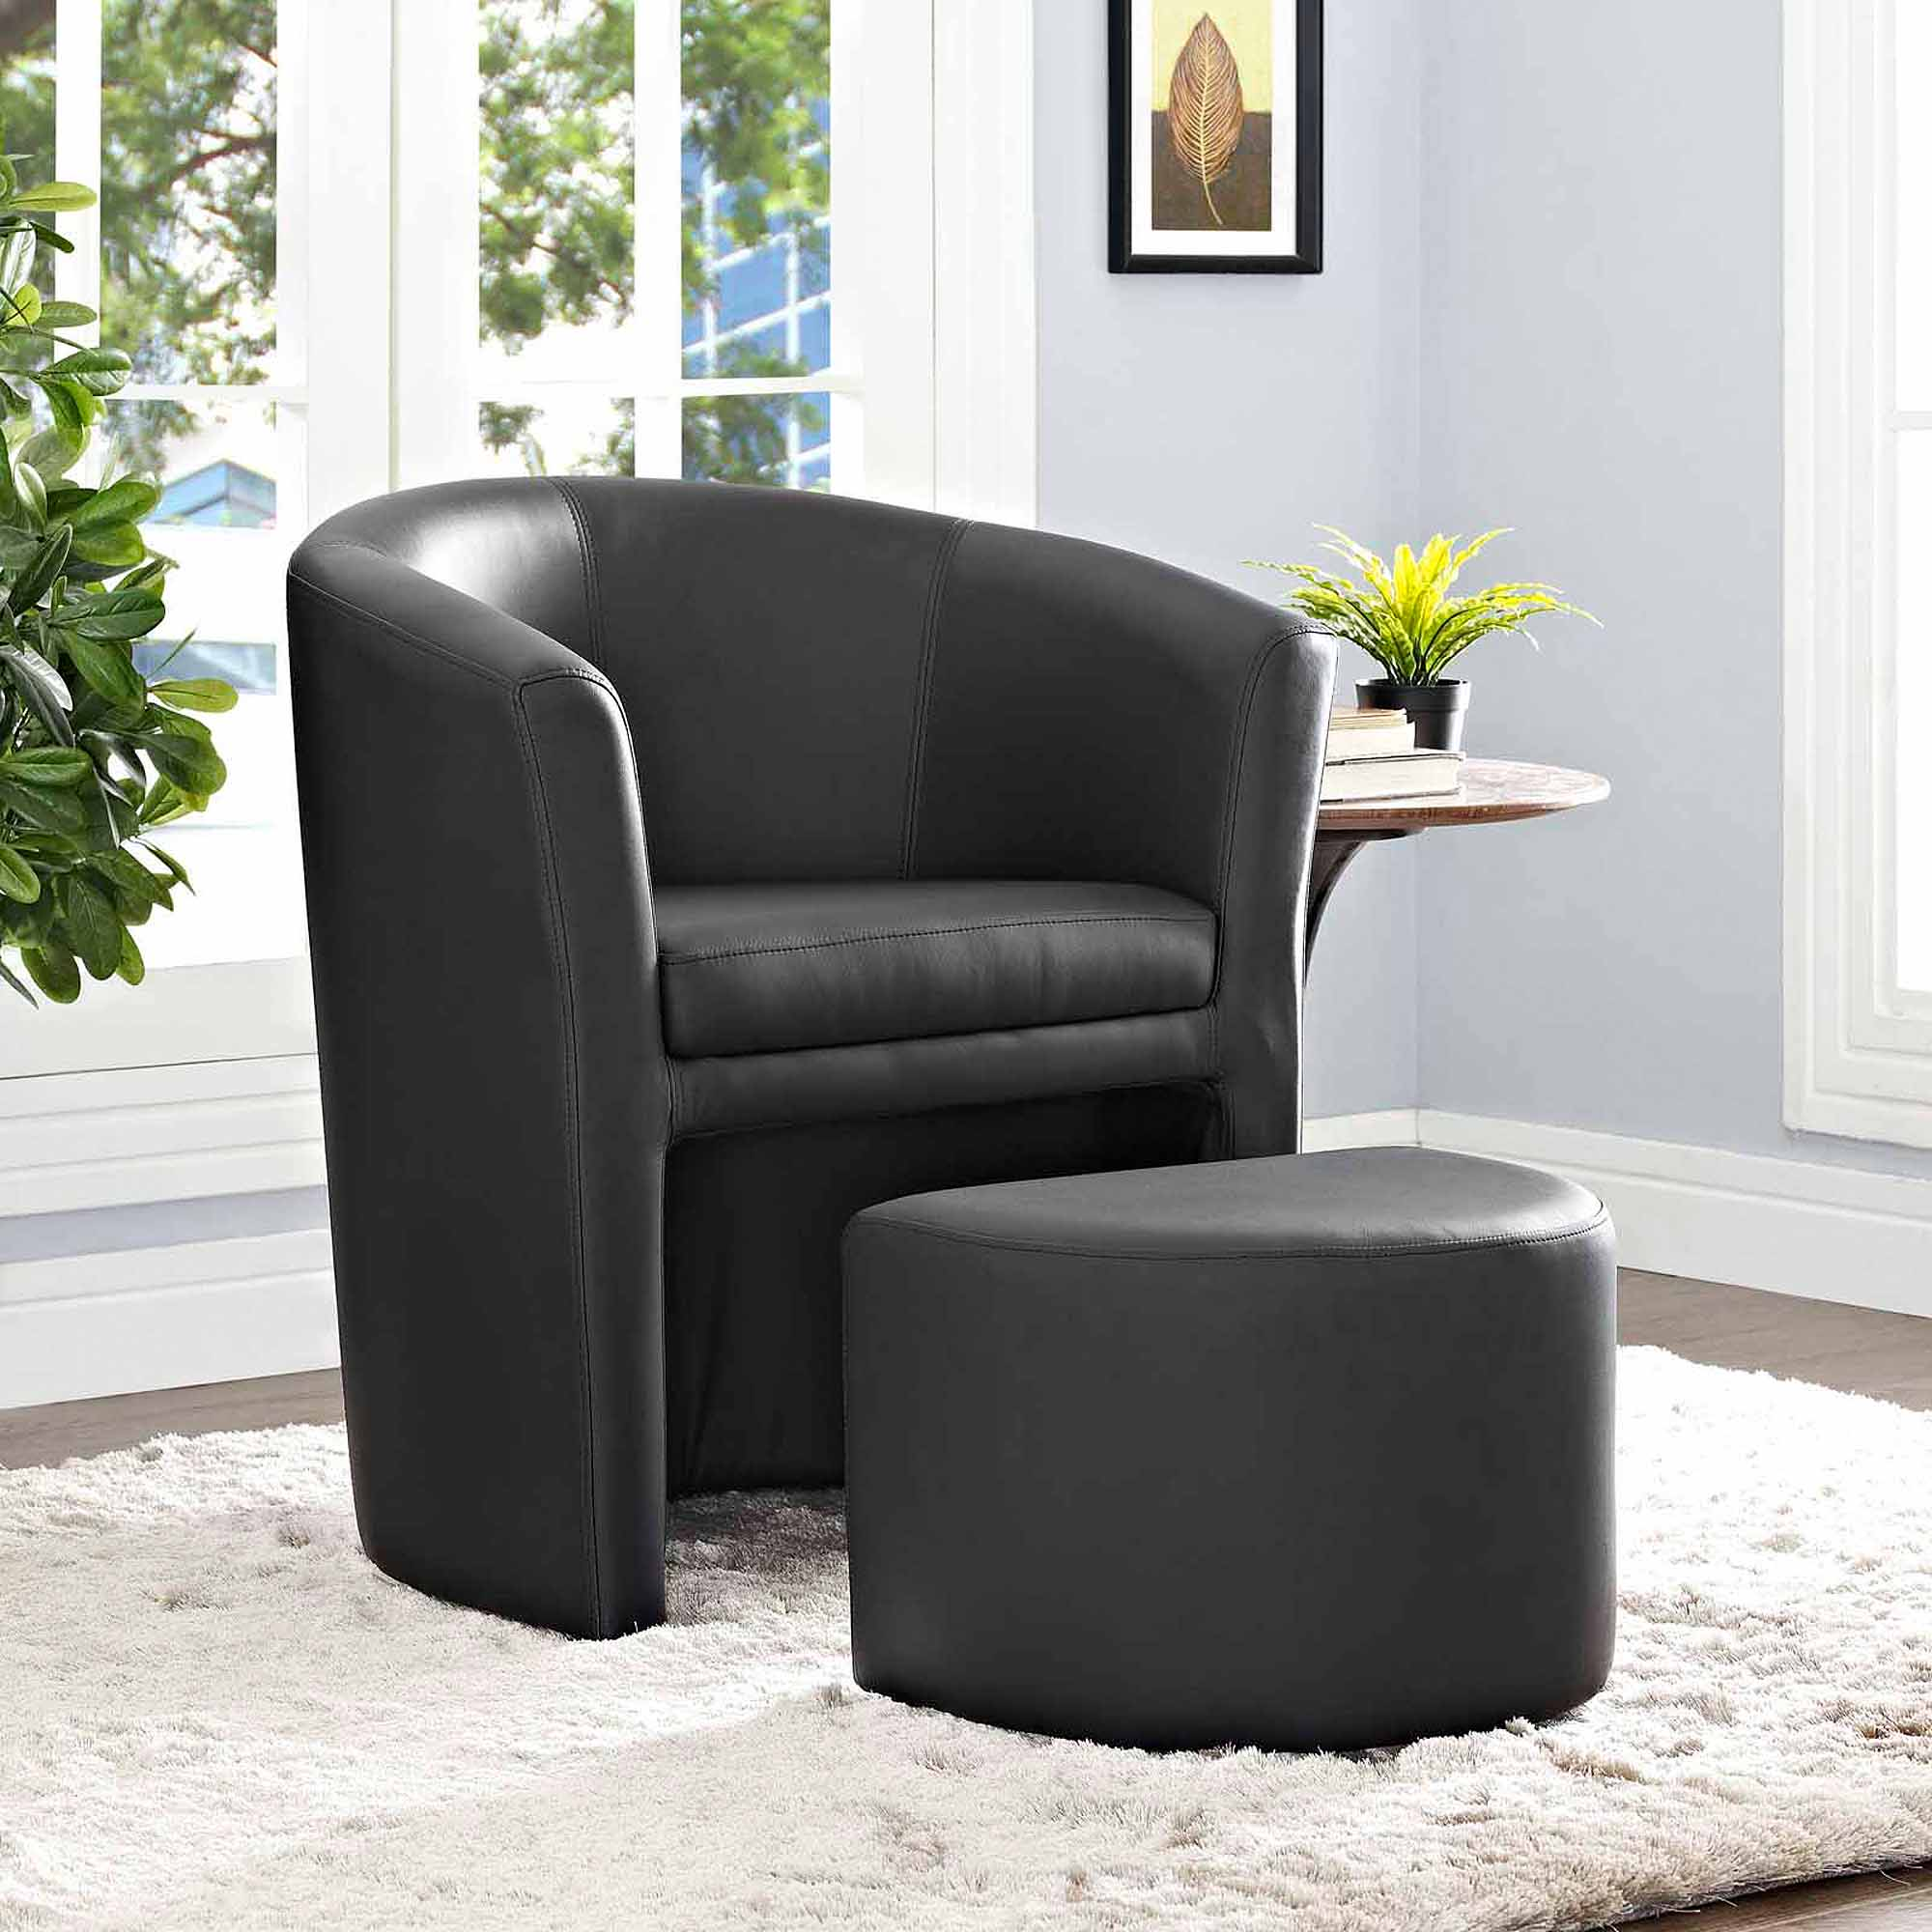 Modway Divulge Armchair and Ottoman, Multiple Colors